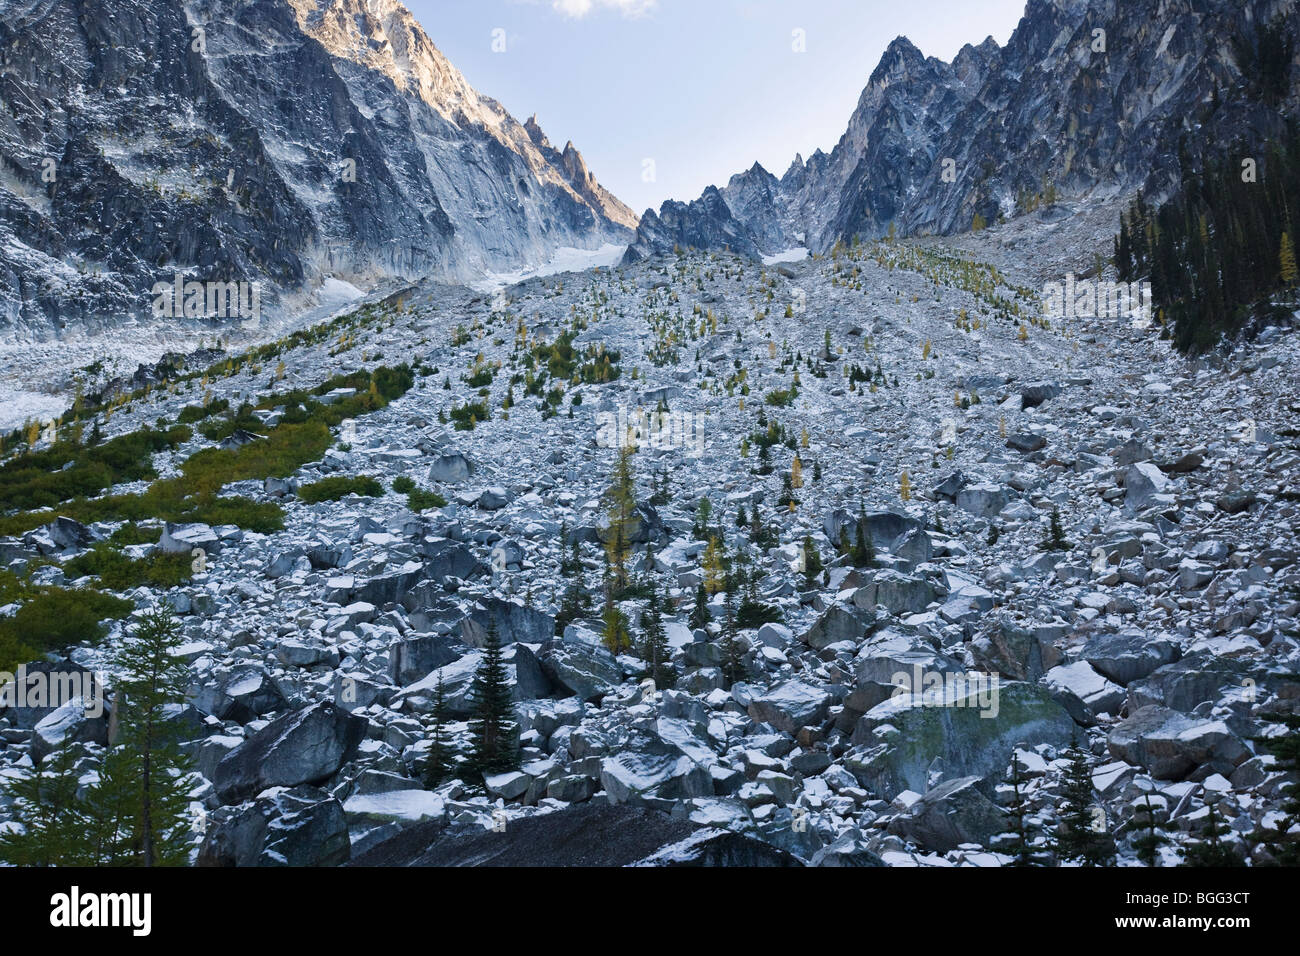 Dragontail Peak and the boulder / talus field above Colchuck Lake covered in an Autumn snow, Washington Cascades, - Stock Image